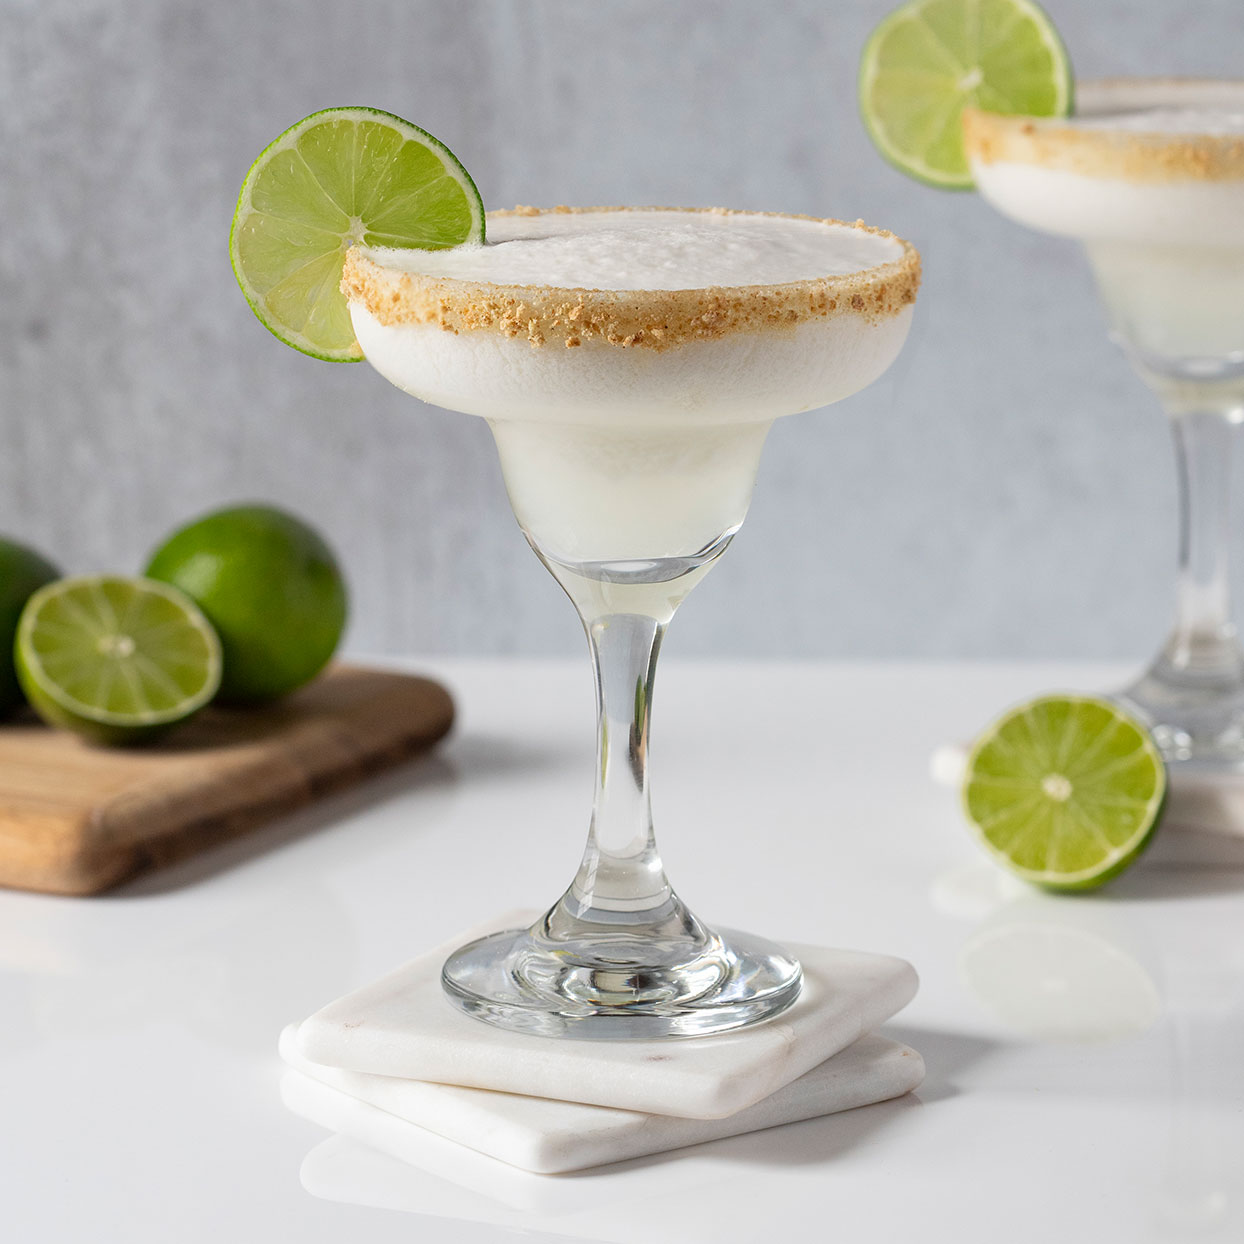 This frozen margarita was inspired by the flavors of a cool and creamy Key lime pie. Whip up a batch of these easy frozen margaritas for Cinco de Mayo or anytime you want a sweet and refreshingly tart treat! Use Key limes--which have a wonderful floral aroma and flavor--if you can find them, but common limes work as well. Freshly squeezed juice will have the best flavor, but you can also find bottled Key lime juice--just be sure to buy unsweetened juice if you go for packaged juice. If you prefer a mocktail, simply replace the tequila with water. Source: EatingWell.com, May 2020